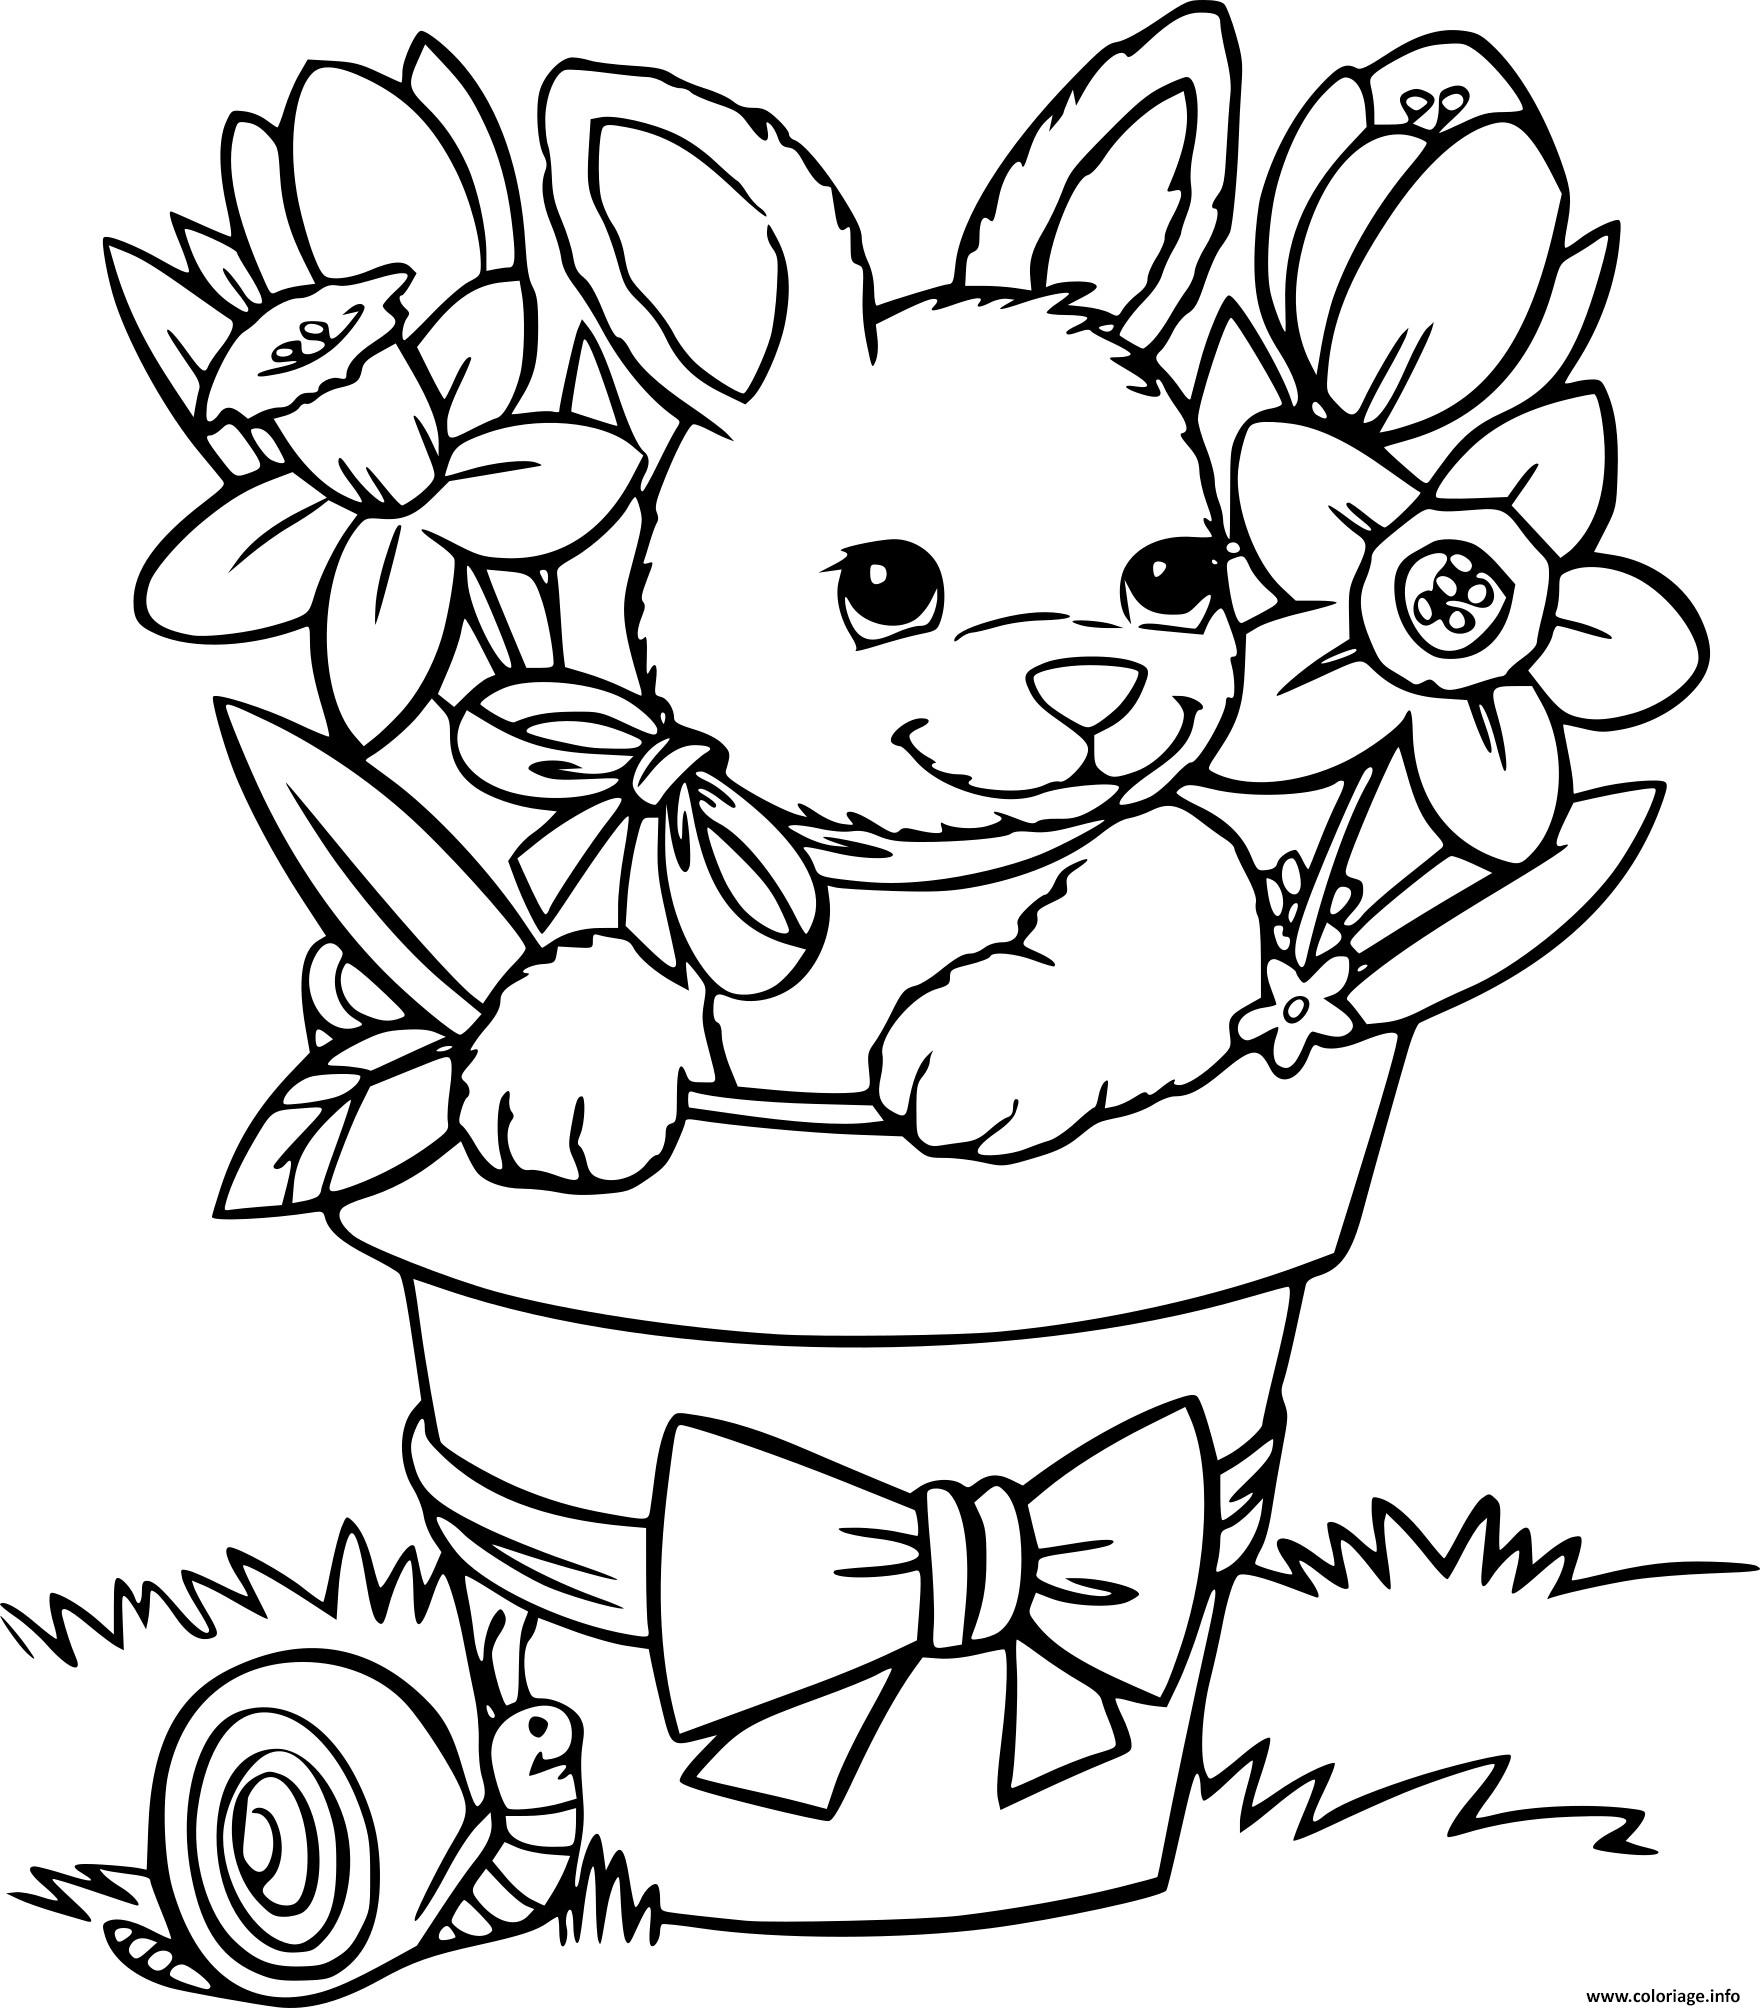 Coloriage lapin avec un escargot - Lapin a colorier ...